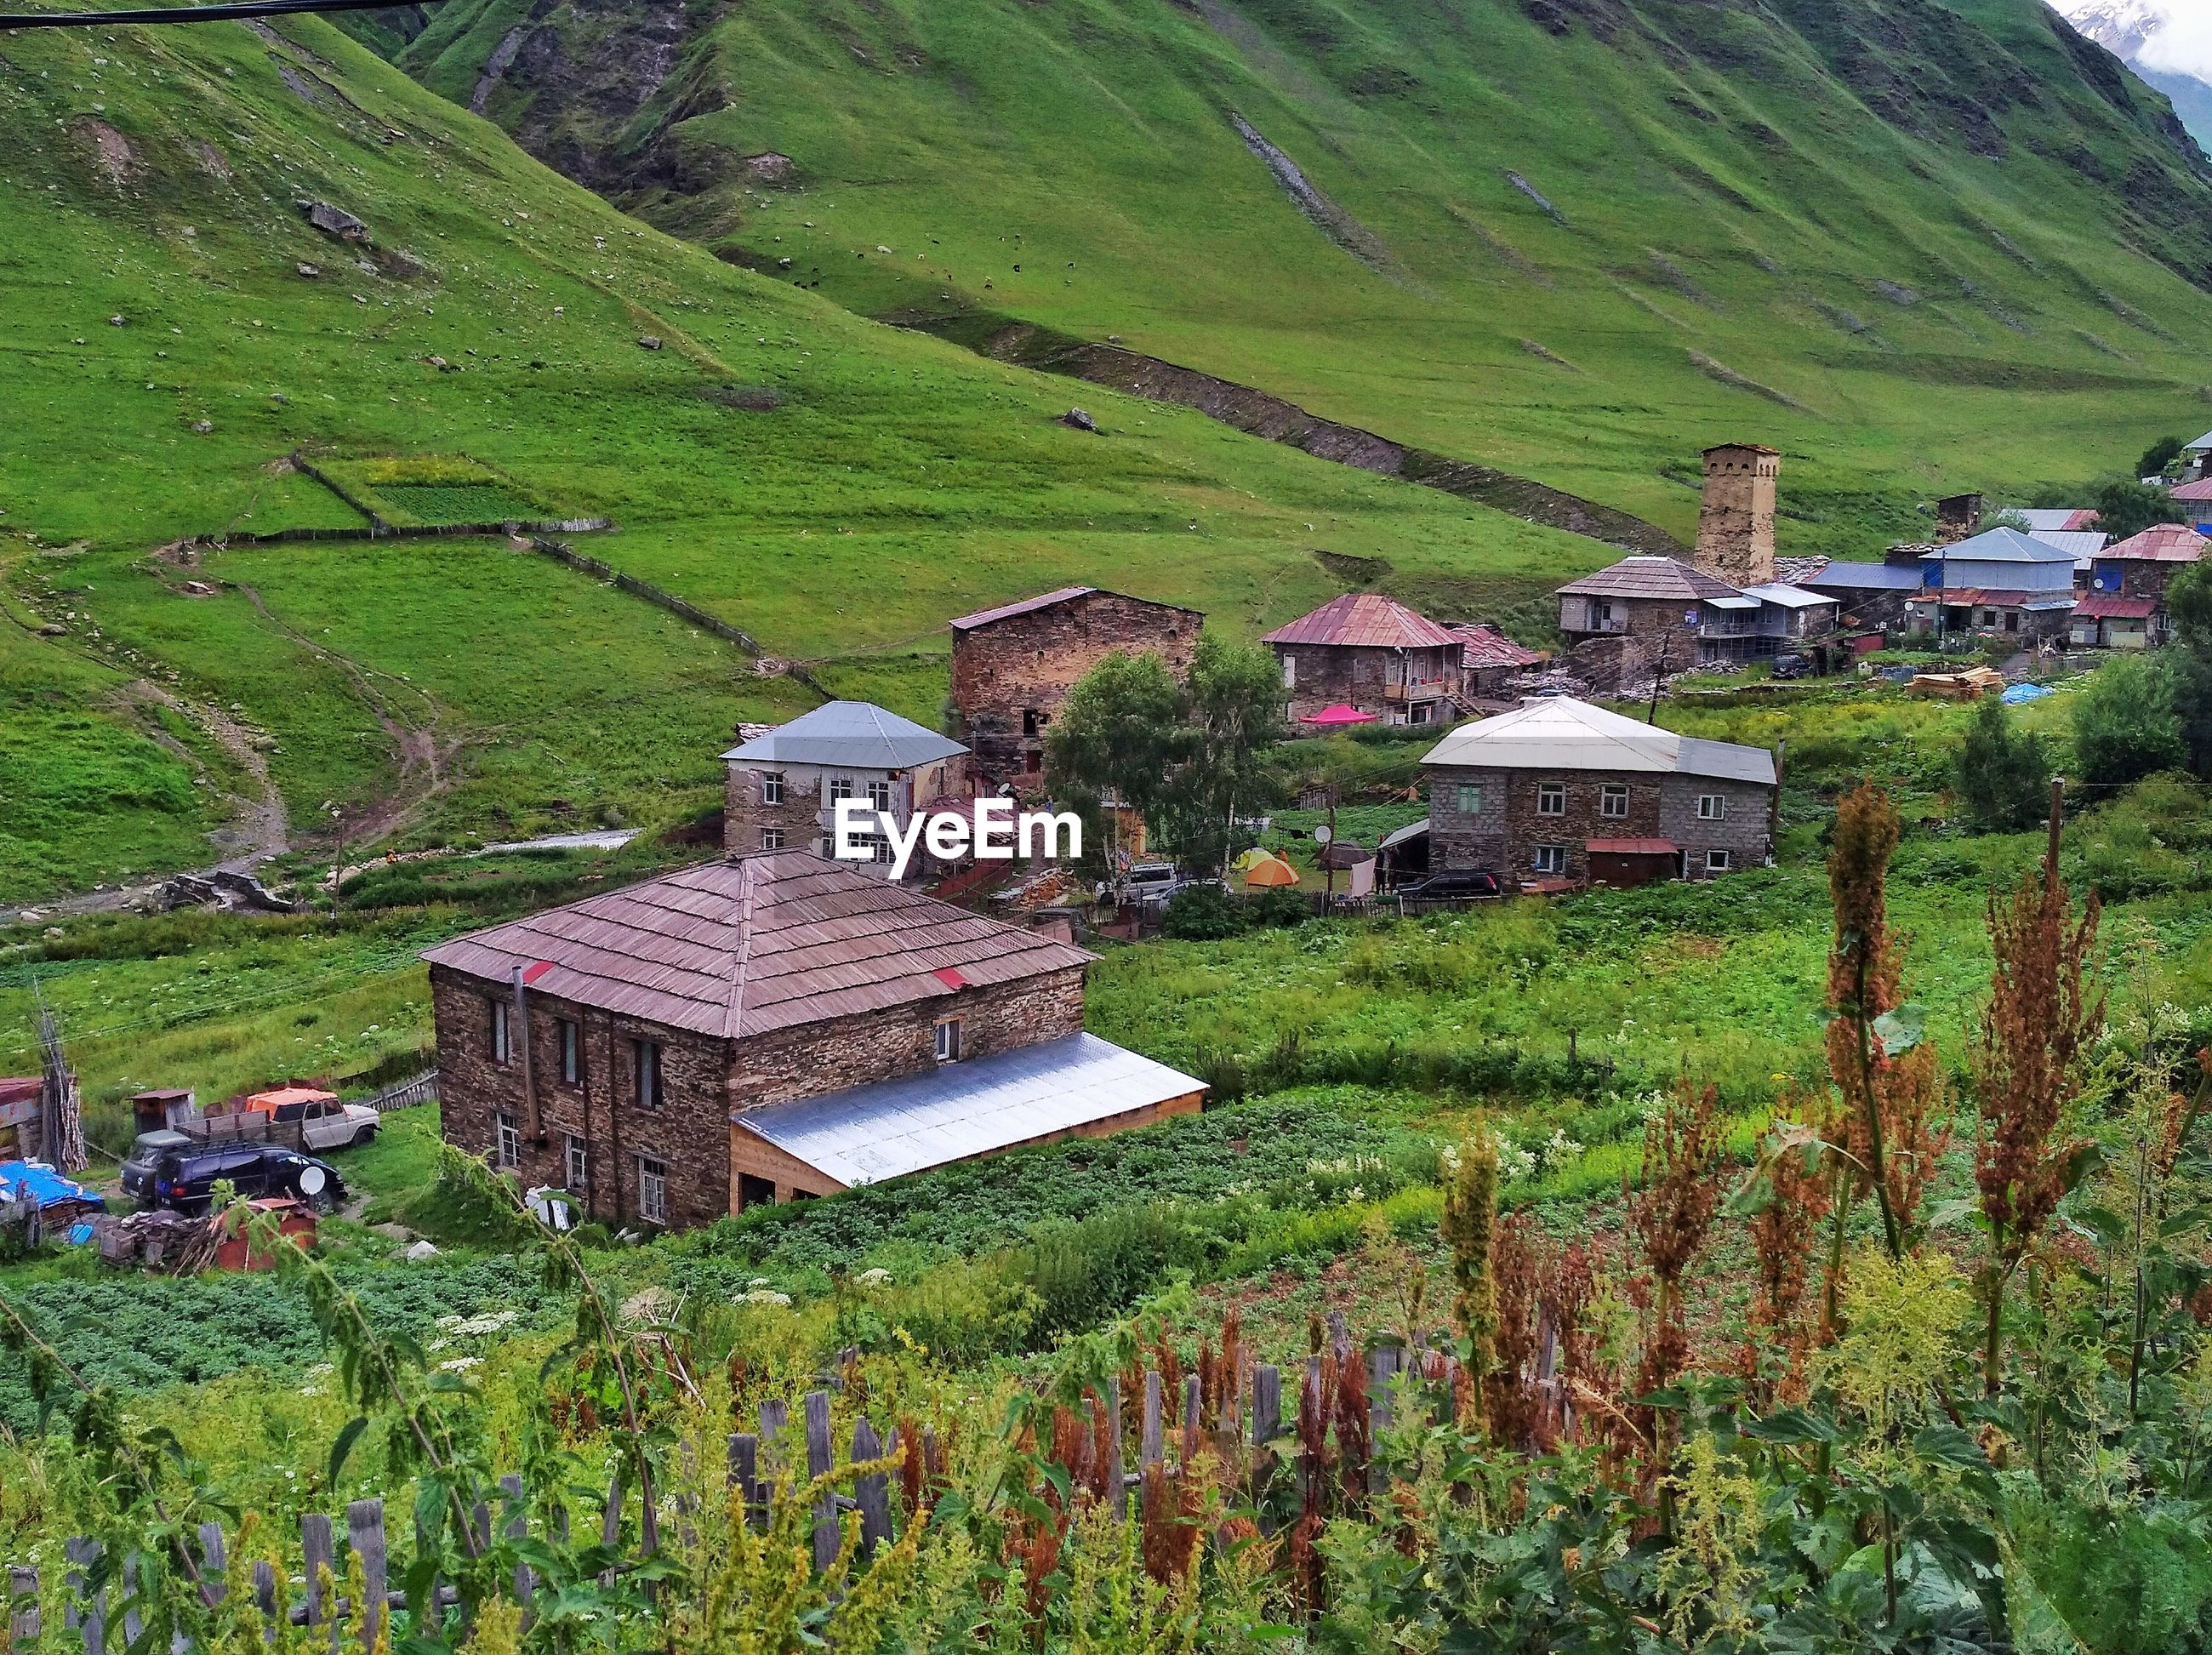 SCENIC VIEW OF VILLAGE ON FIELD BY HOUSES